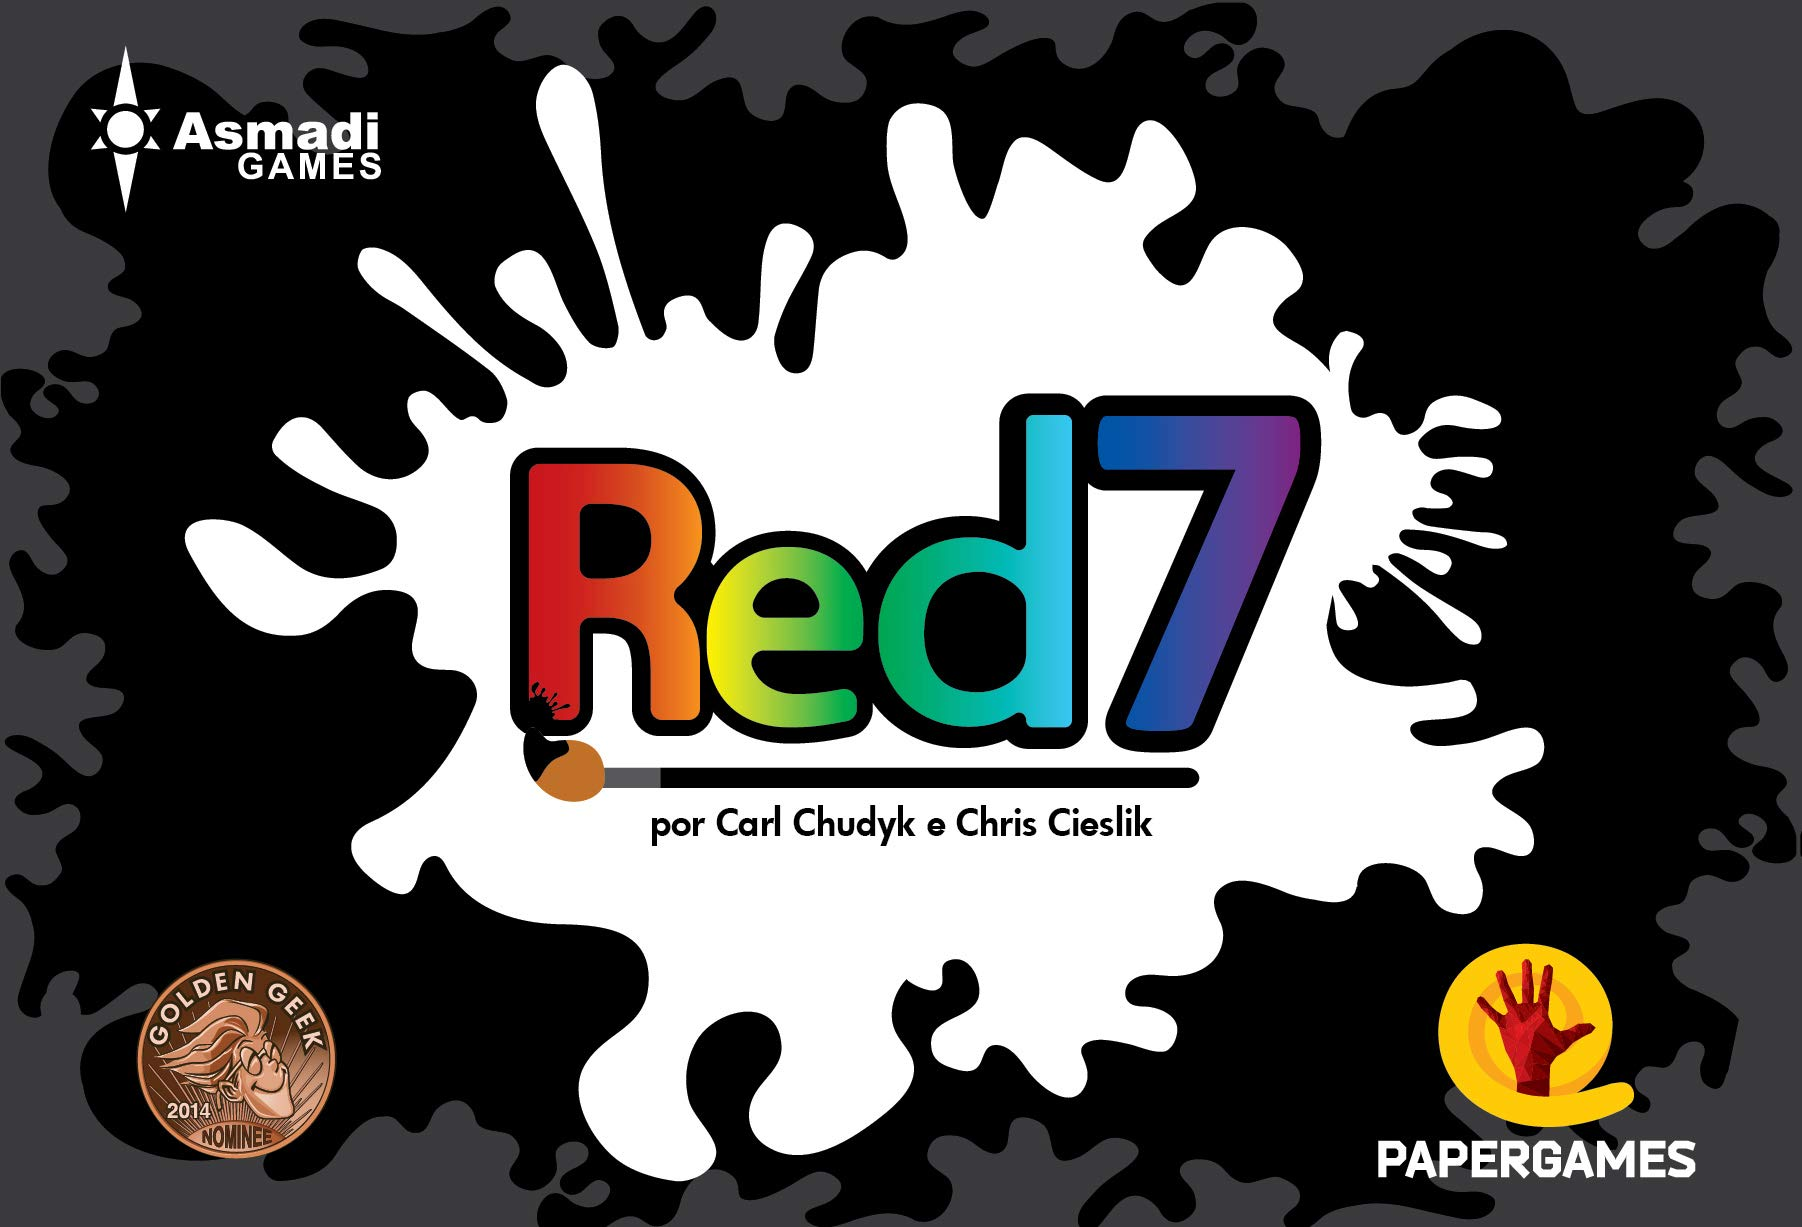 Red7 Card Game by Asmadi Games (Image #4)